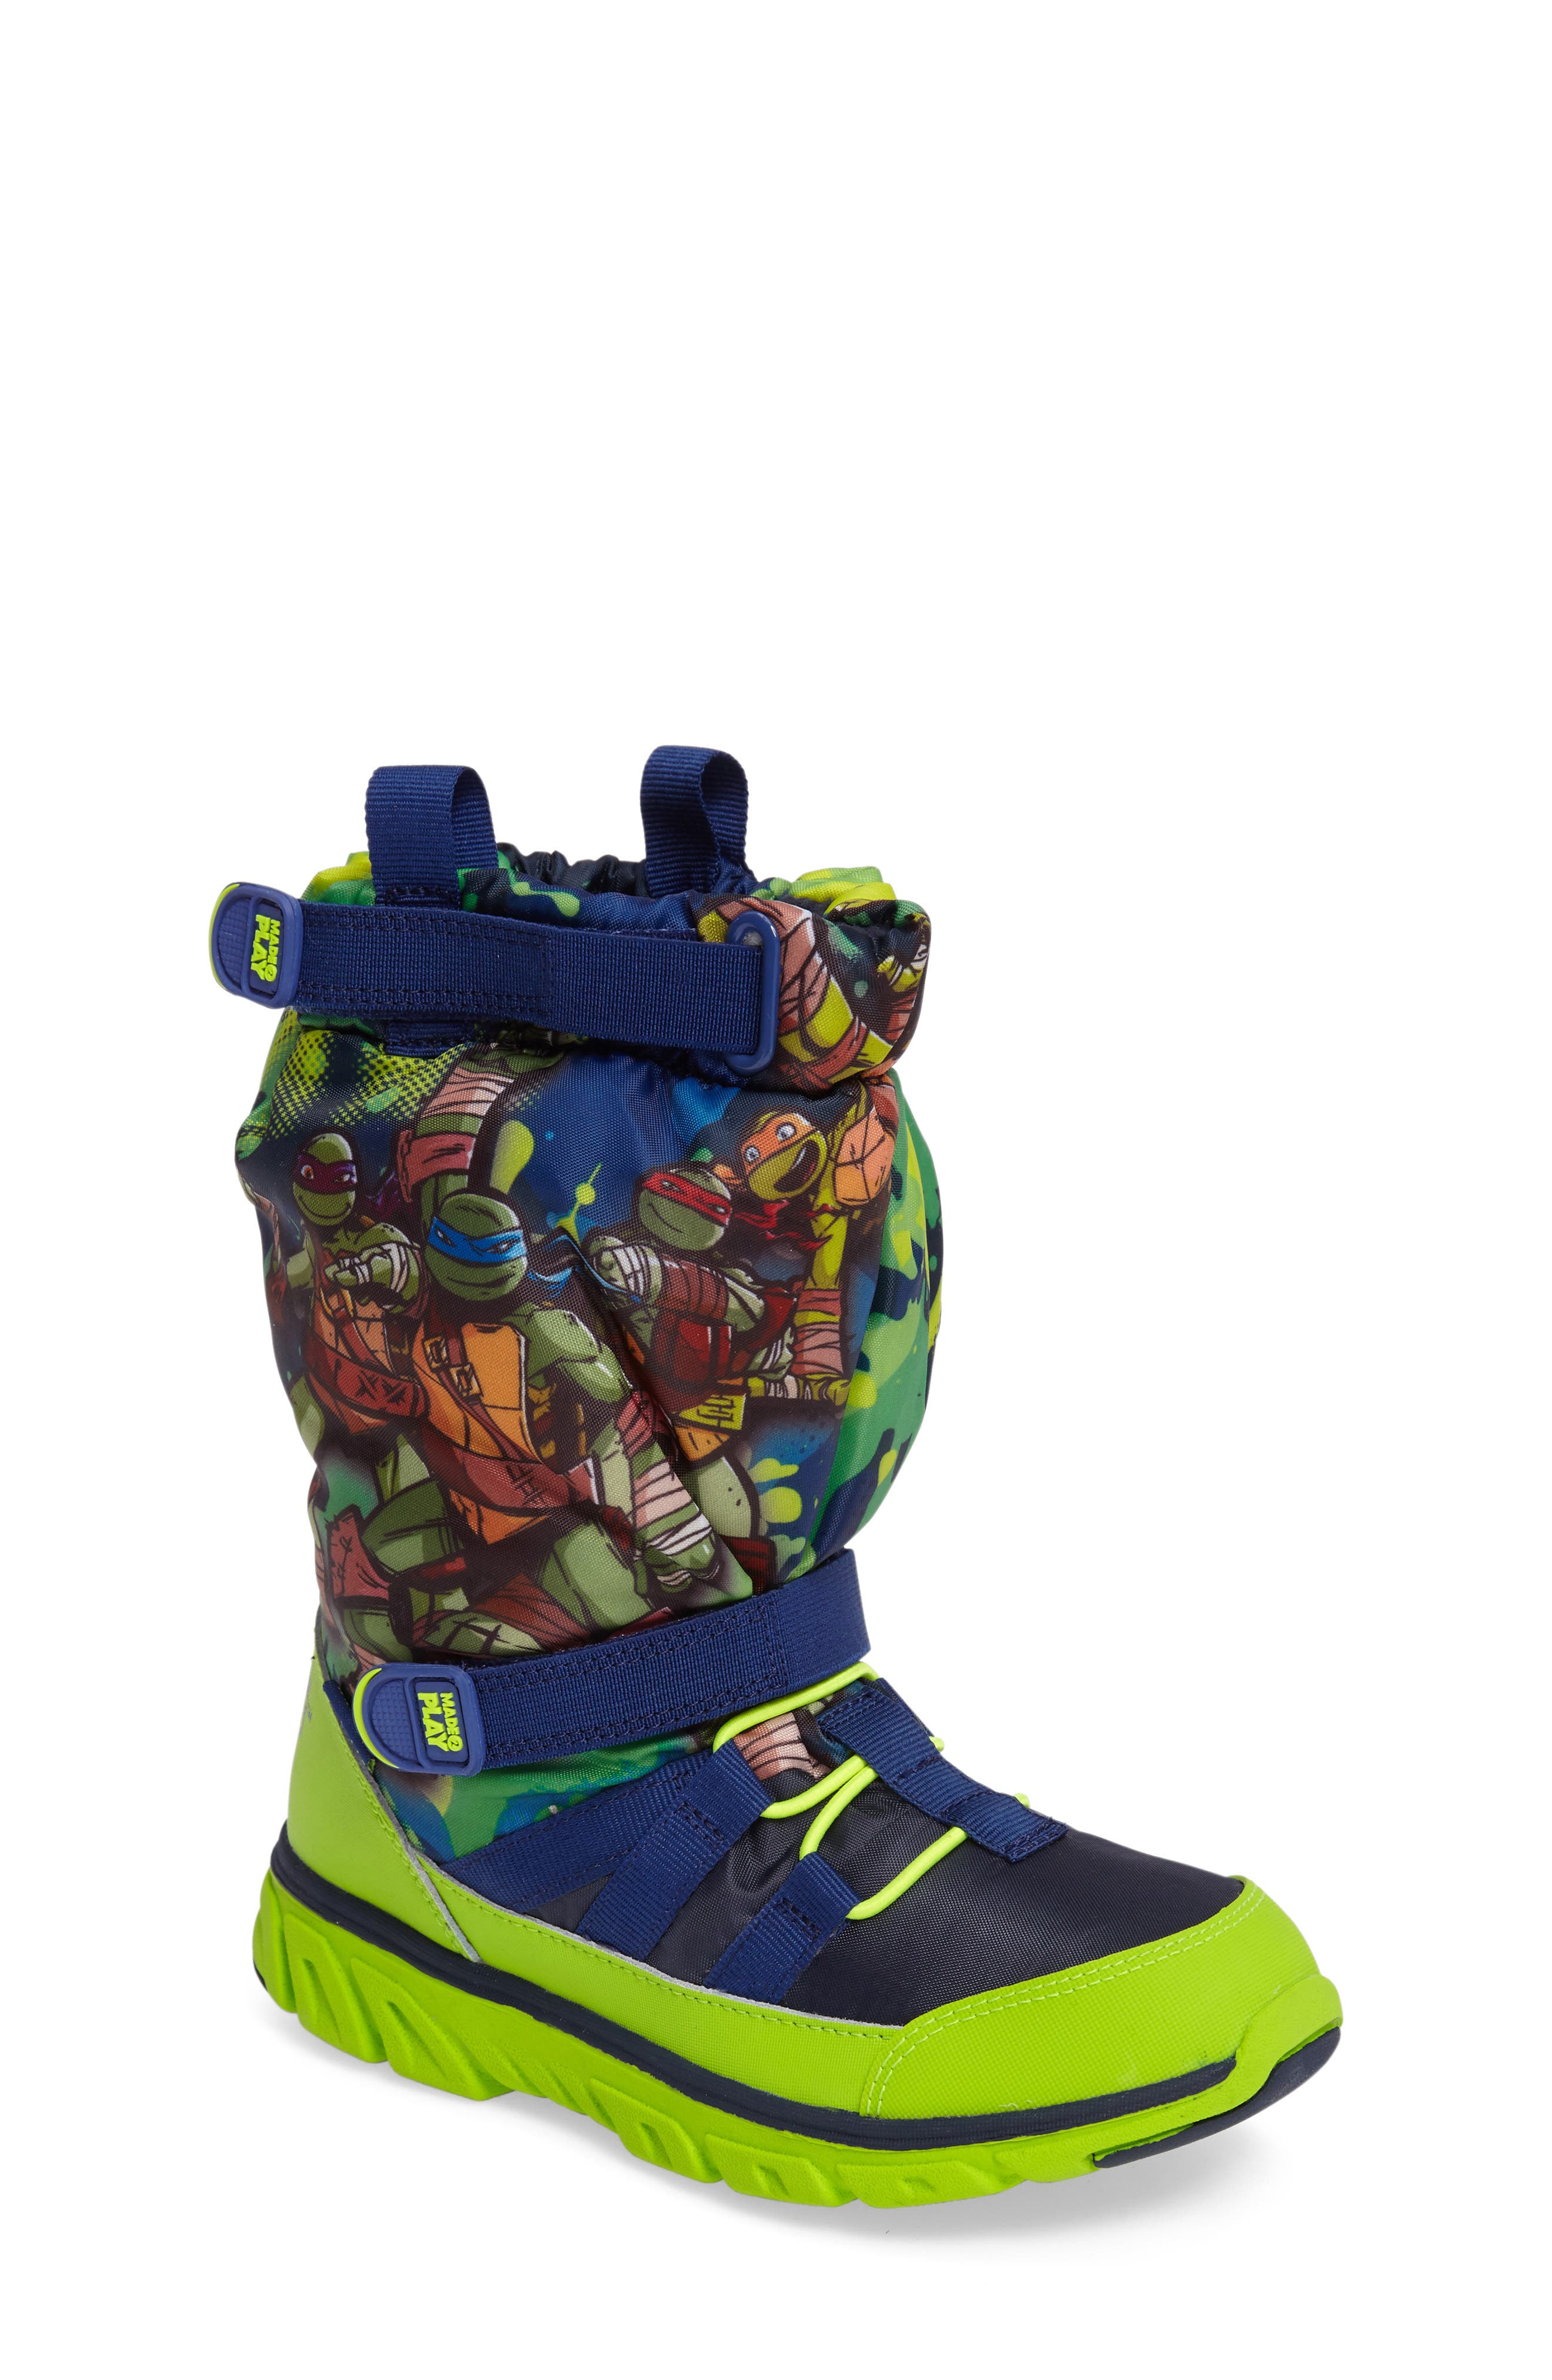 Main Image - Stride Rite Made2Play Teenage Mutant Ninja Turtles Sneaker Boot (Baby, Walker, Toddler & Little Kid)